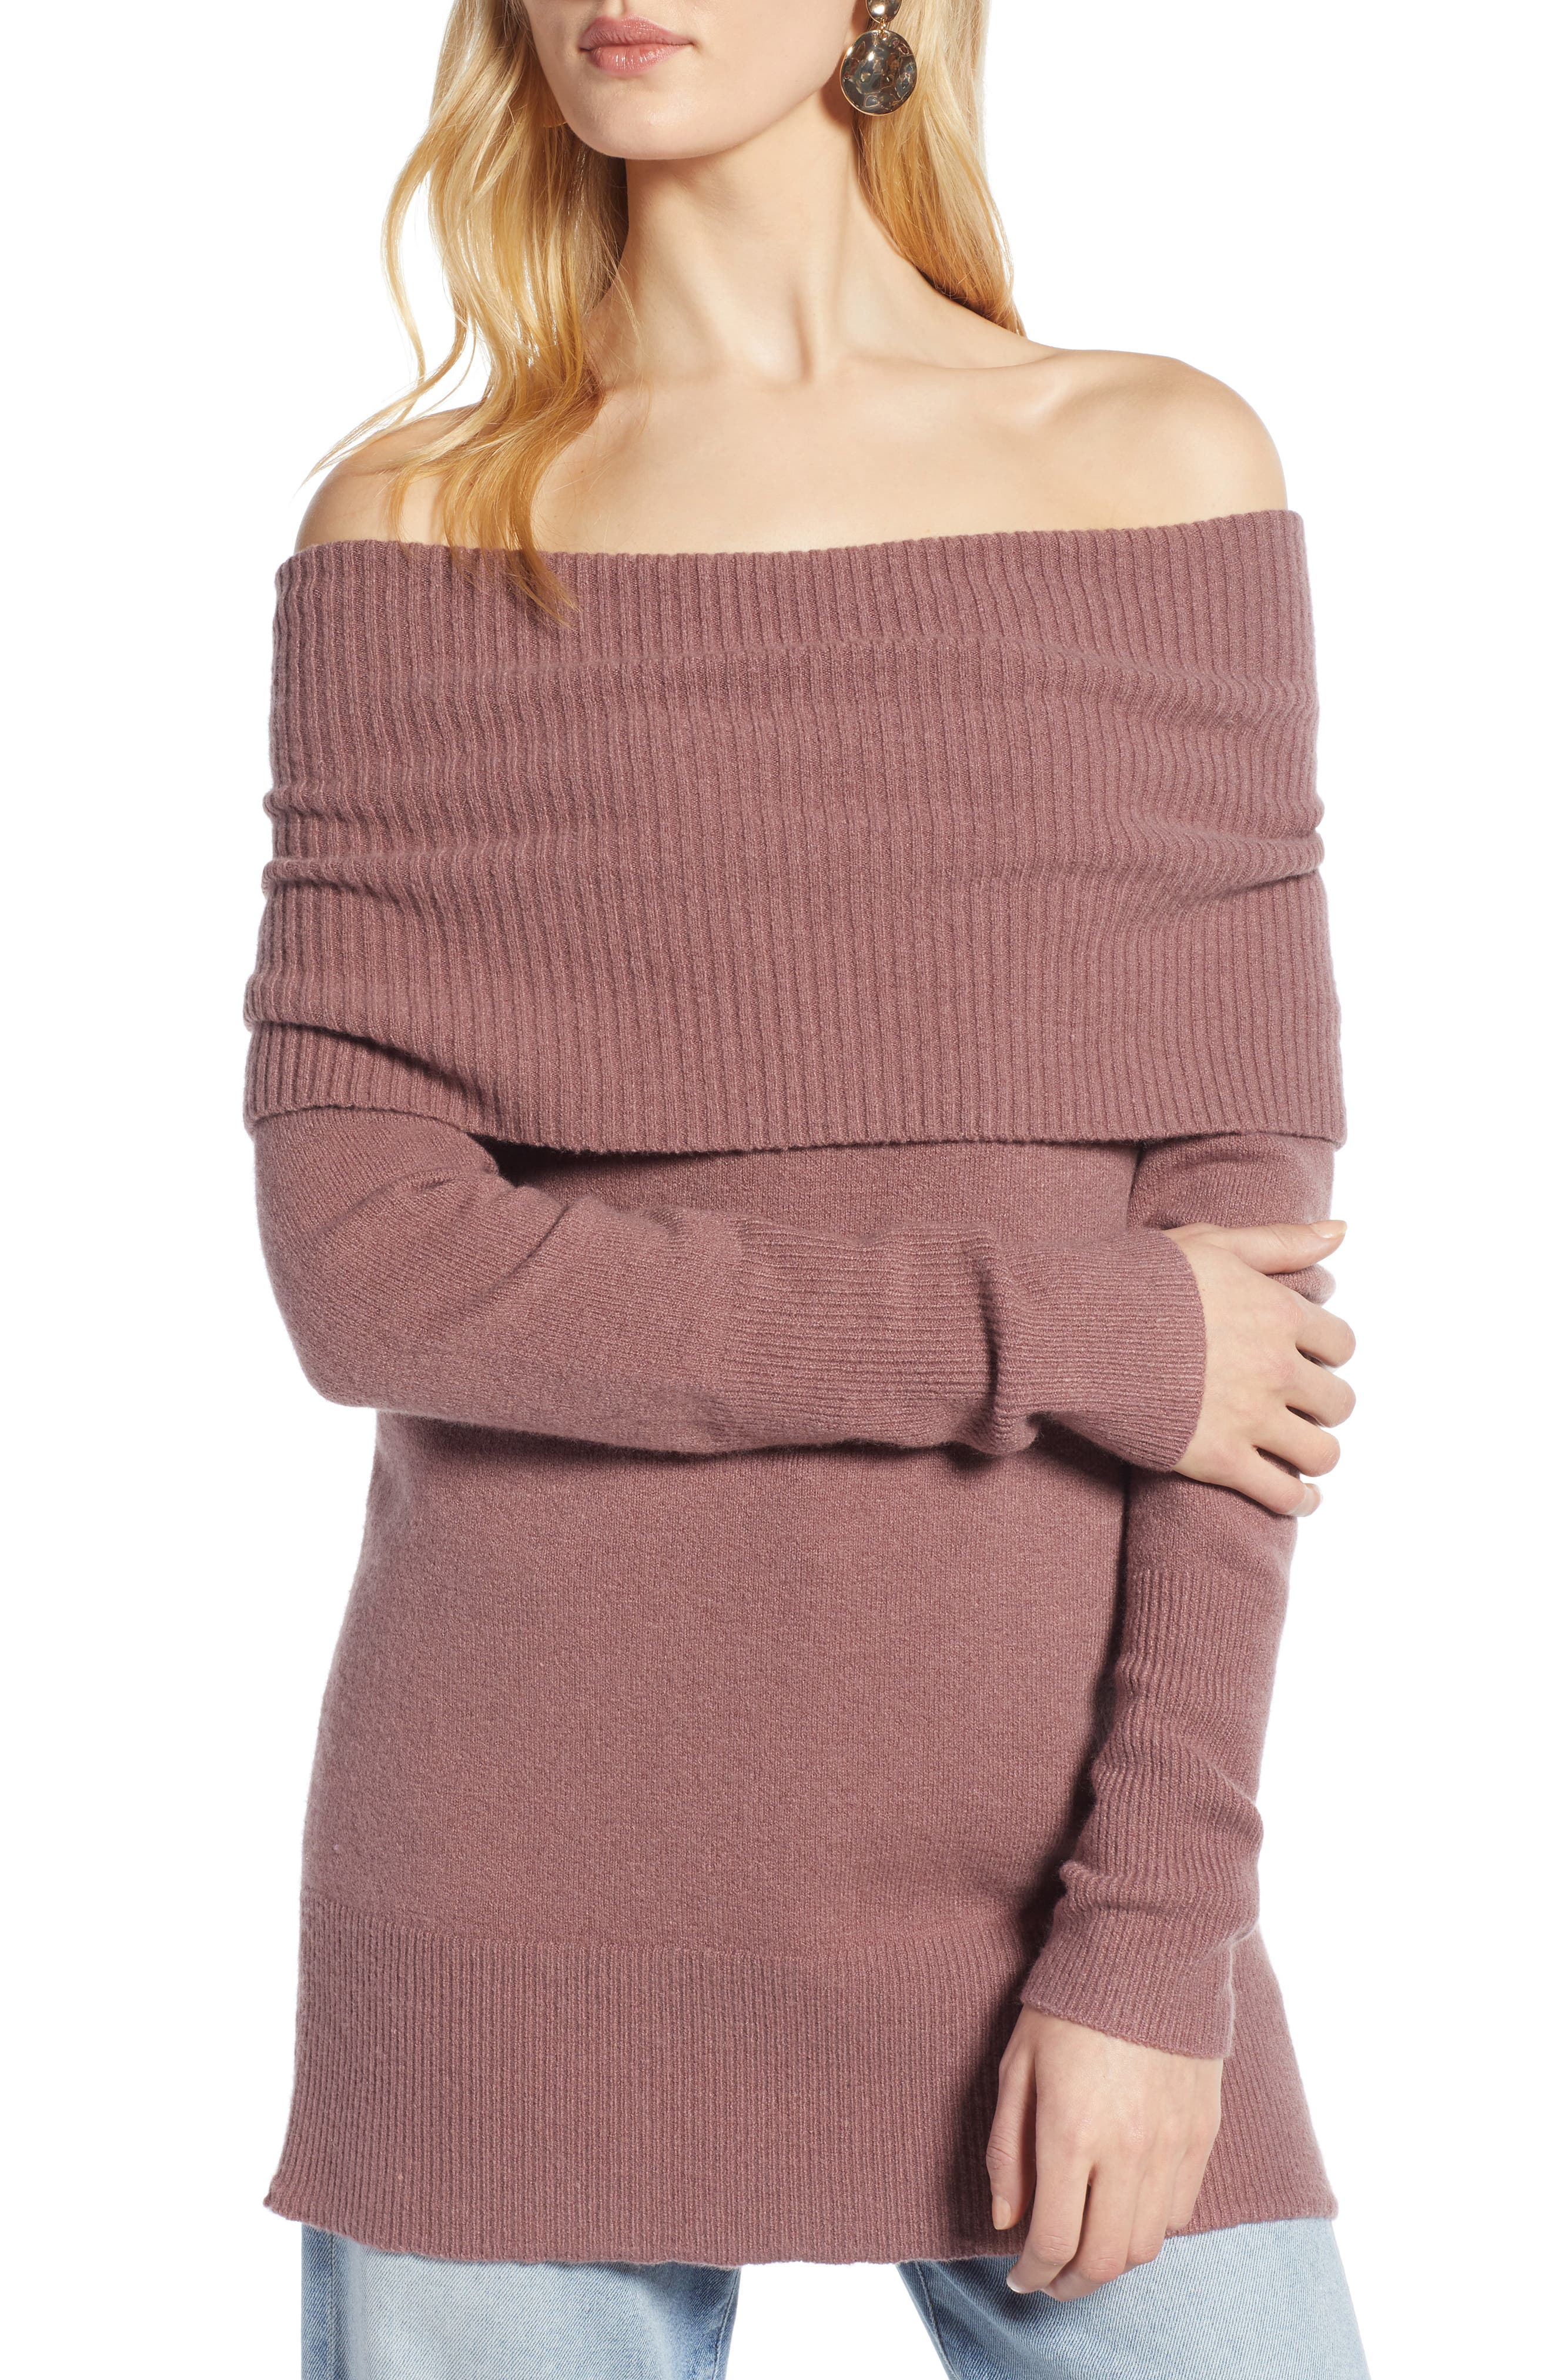 Convertible Neck Sweater,                         Main,                         color, PURPLE TAUPE